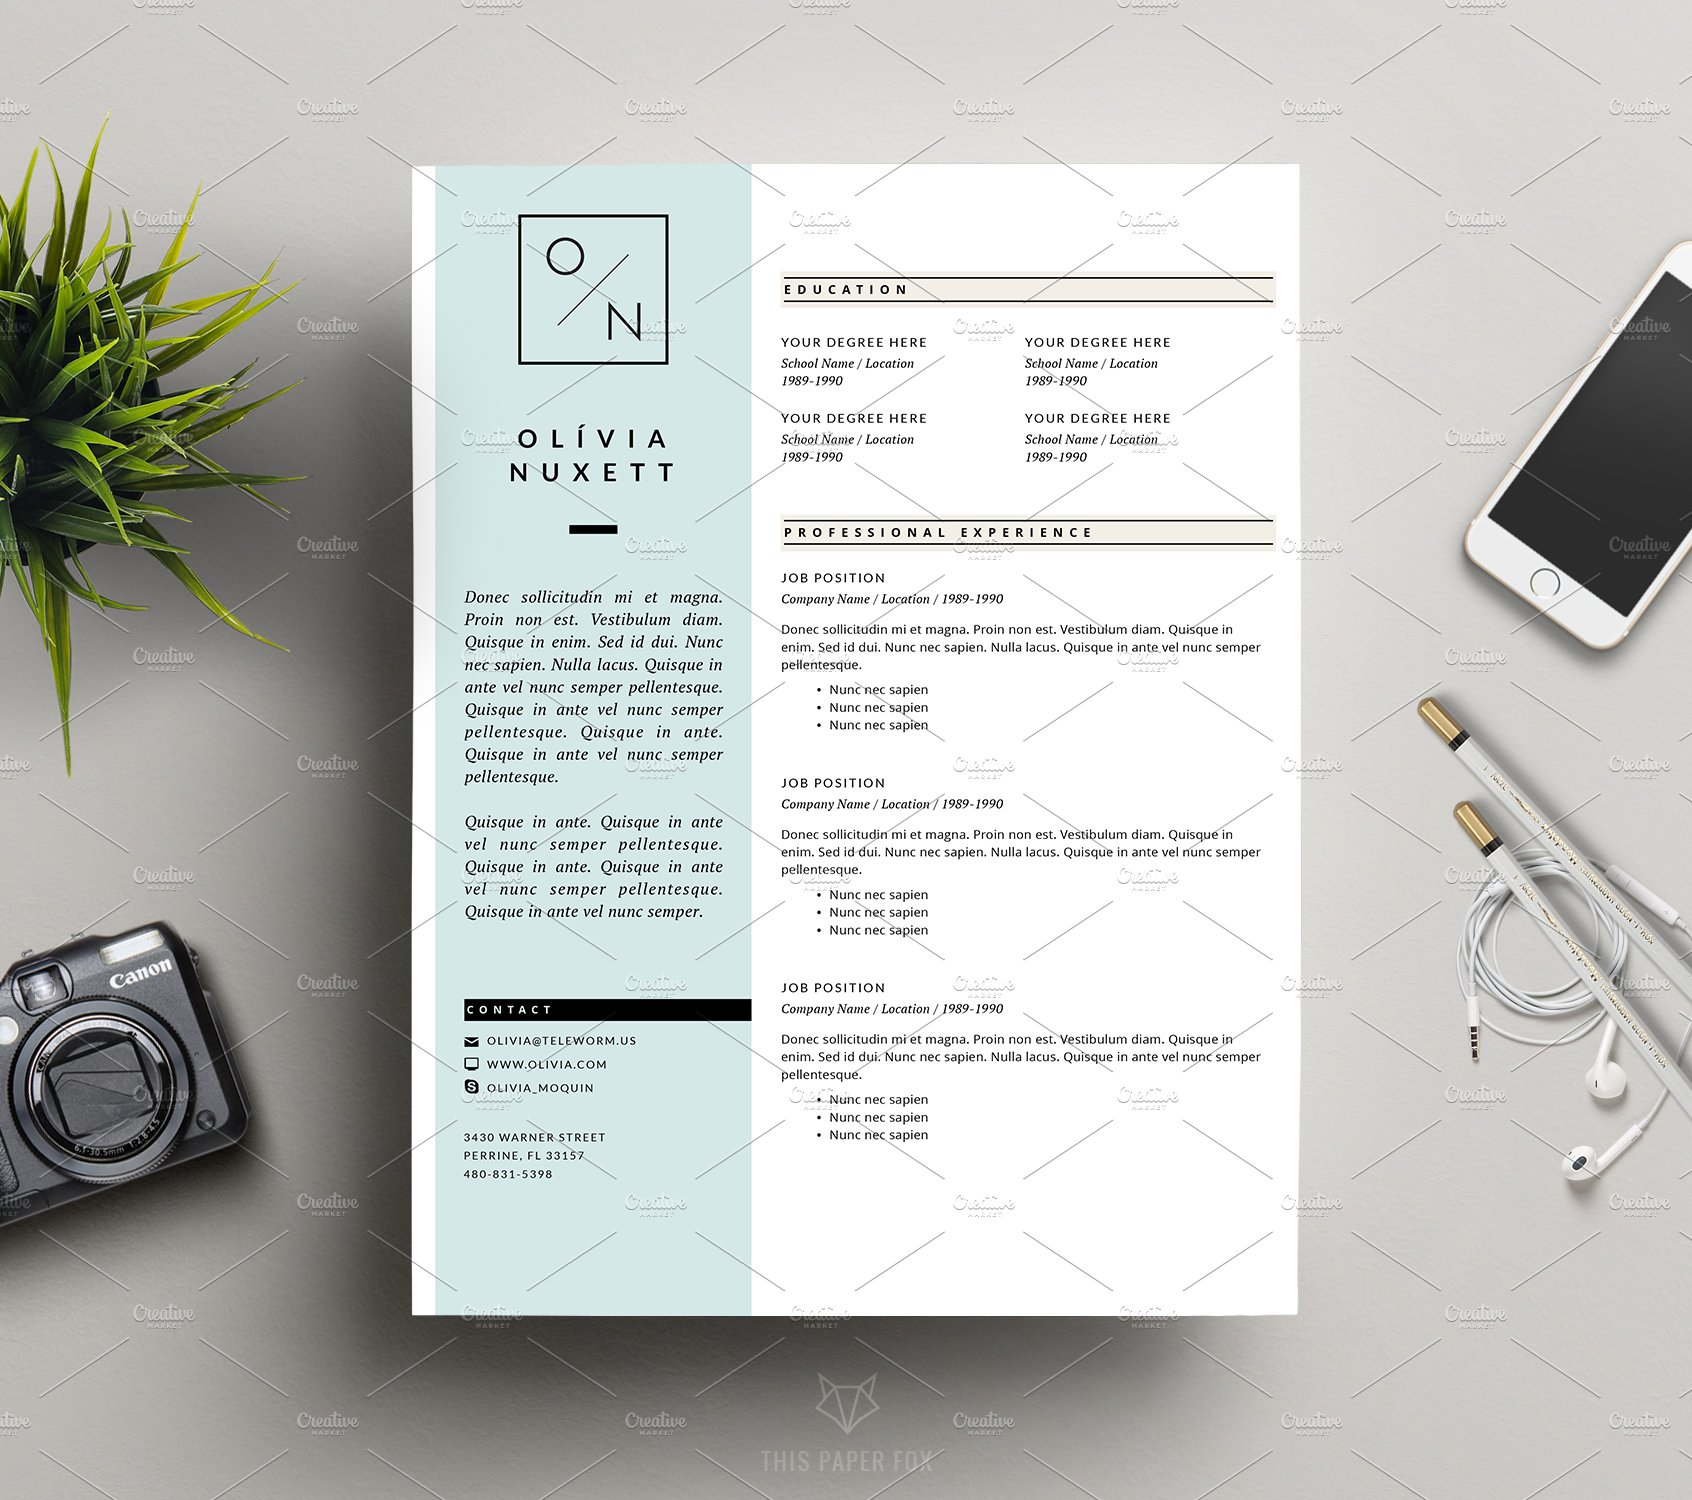 minimalist resume for ms word  resume templates on creative market also